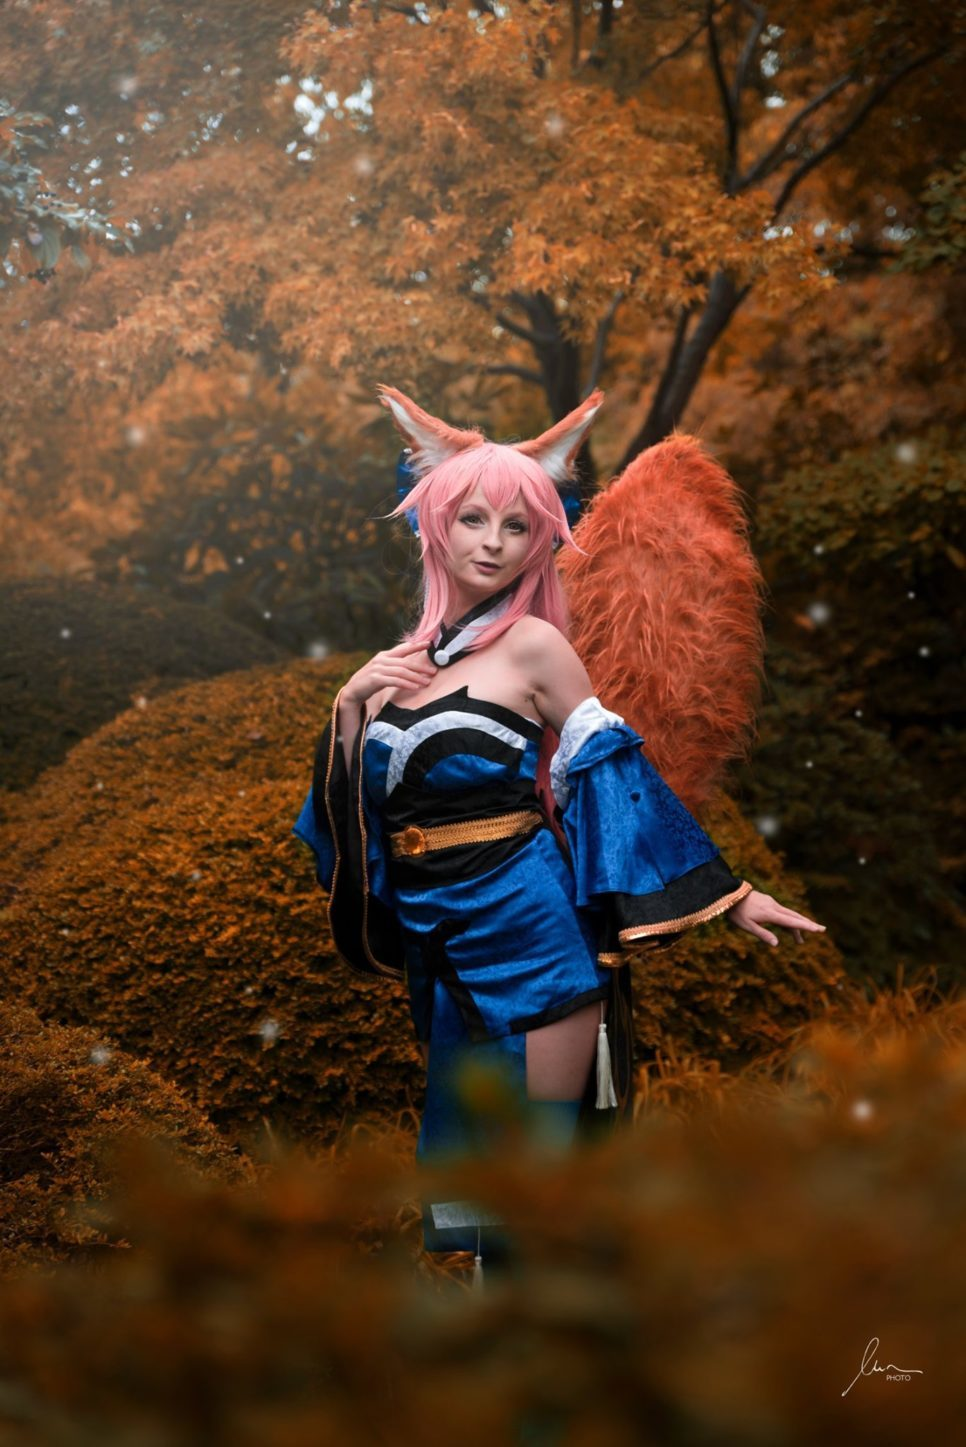 Tamamo no Mae | Fate/Grand Order